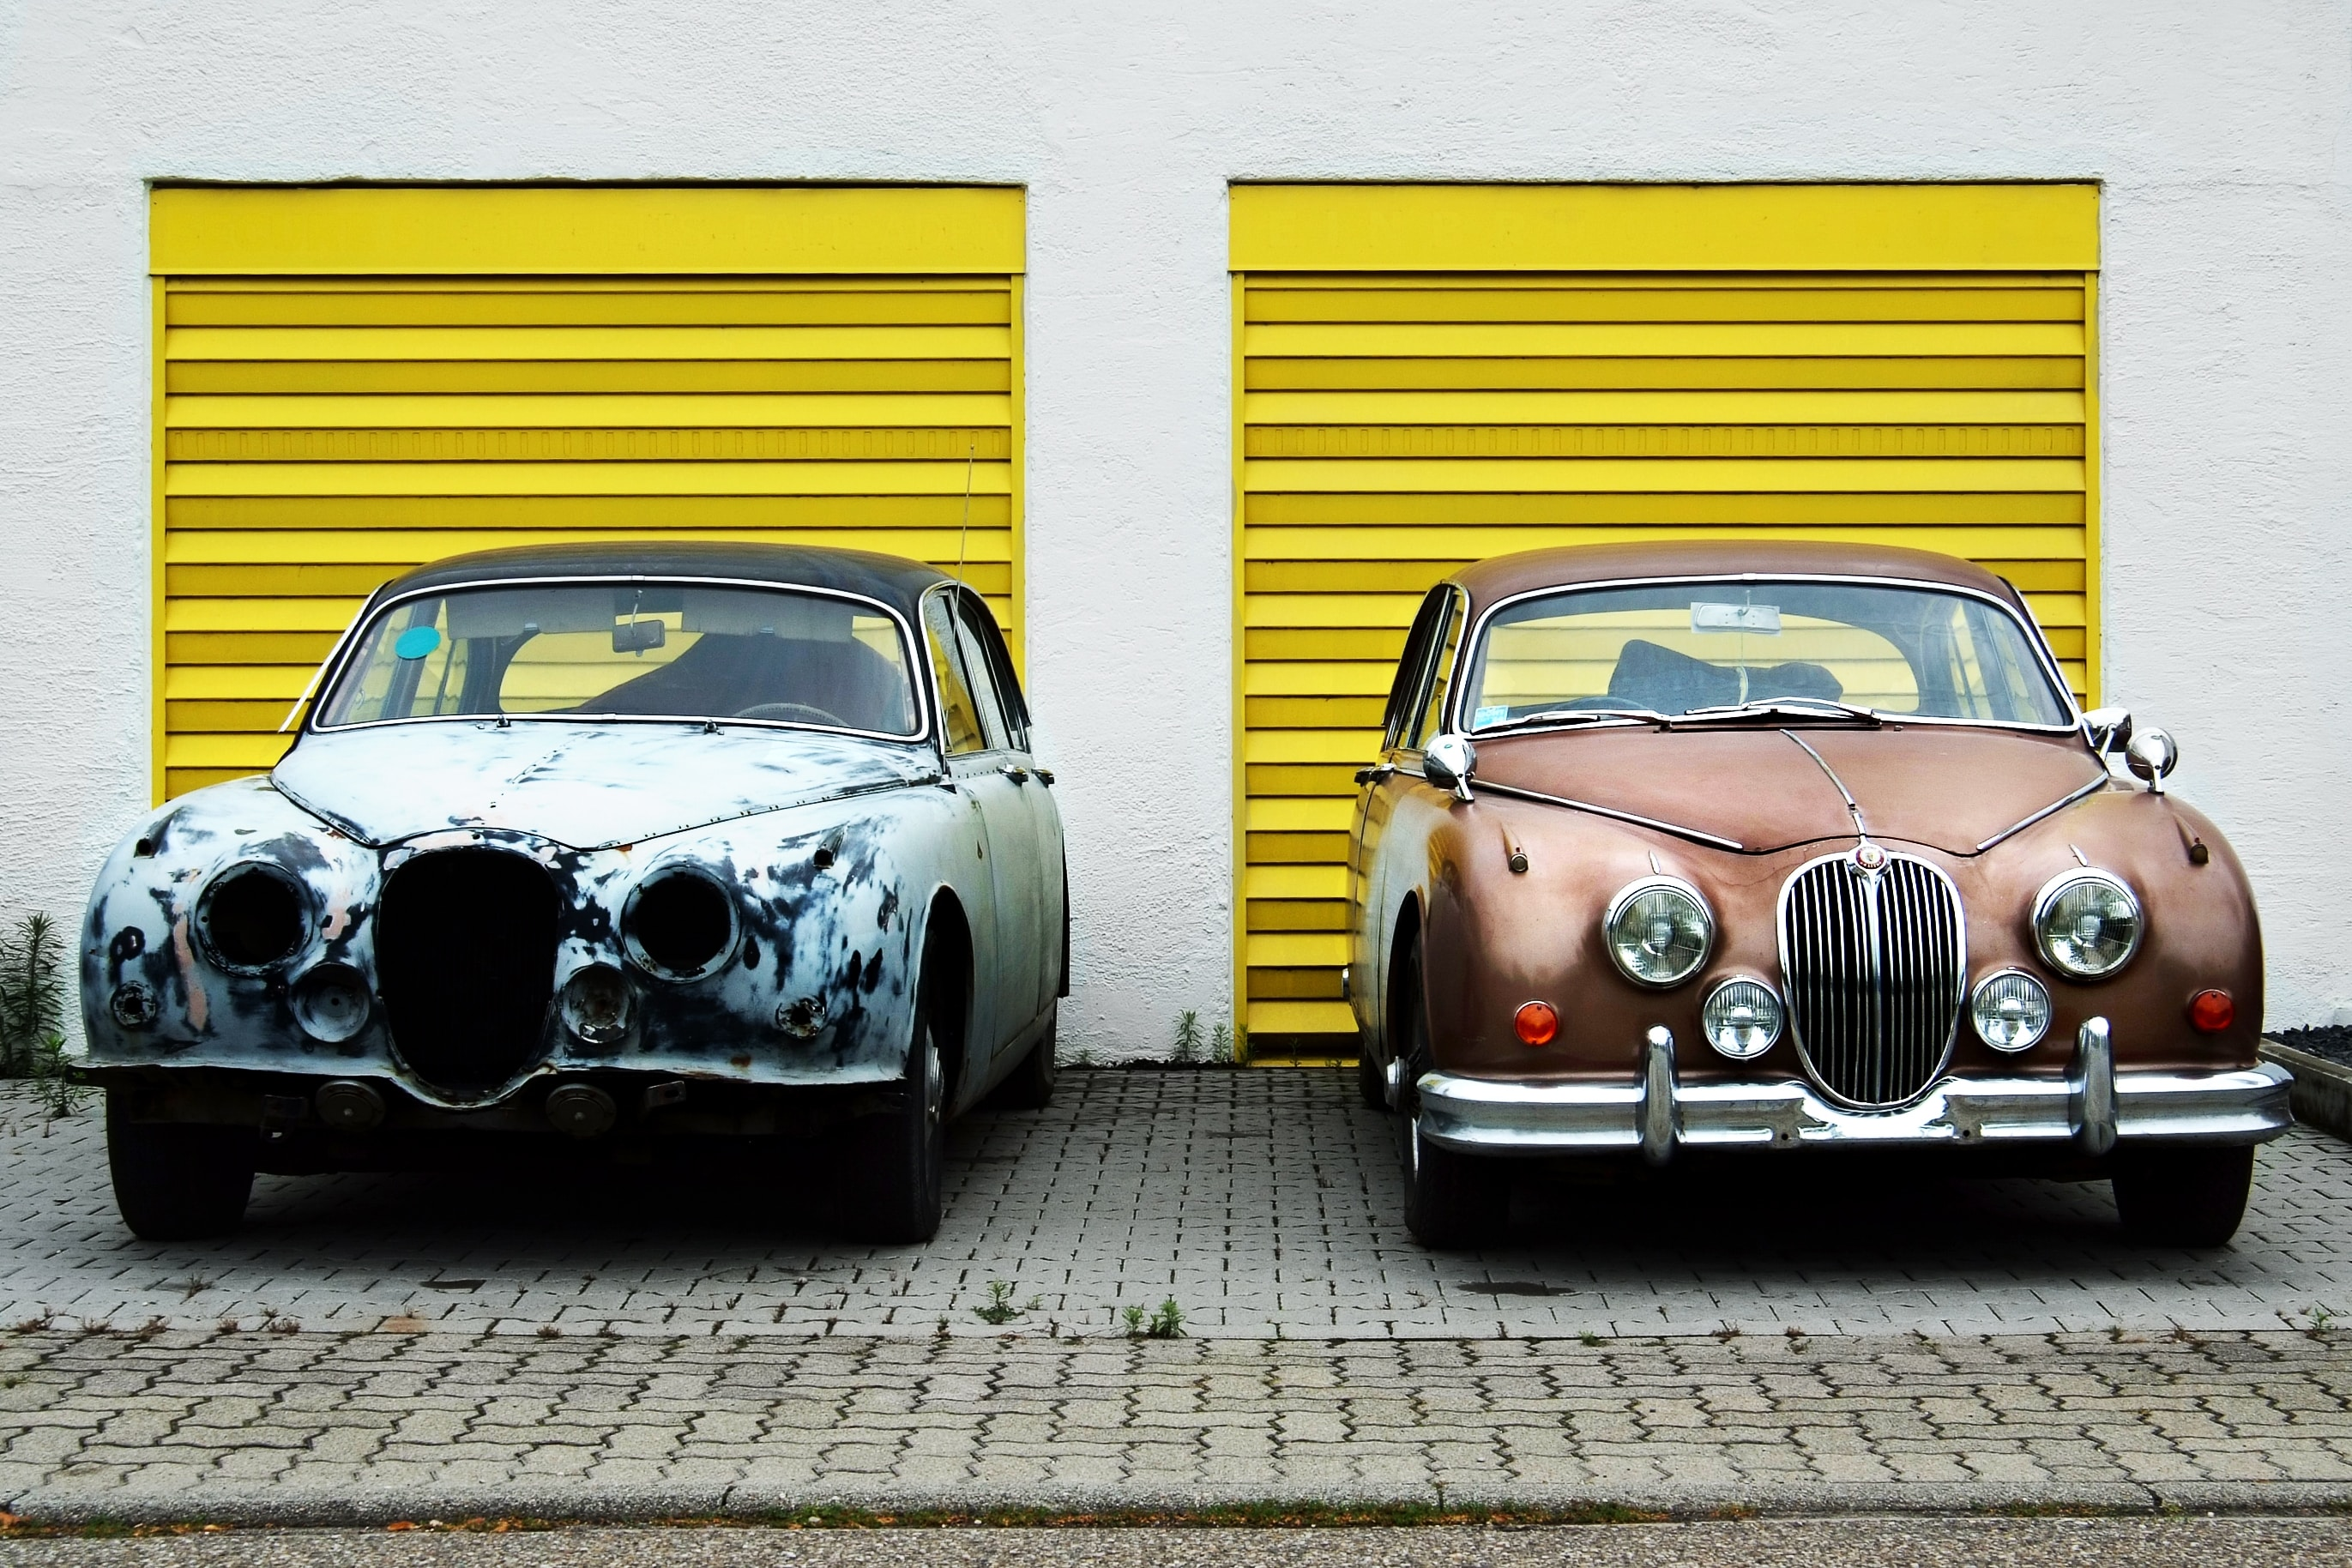 Jaguar cars in front of yellow garage door